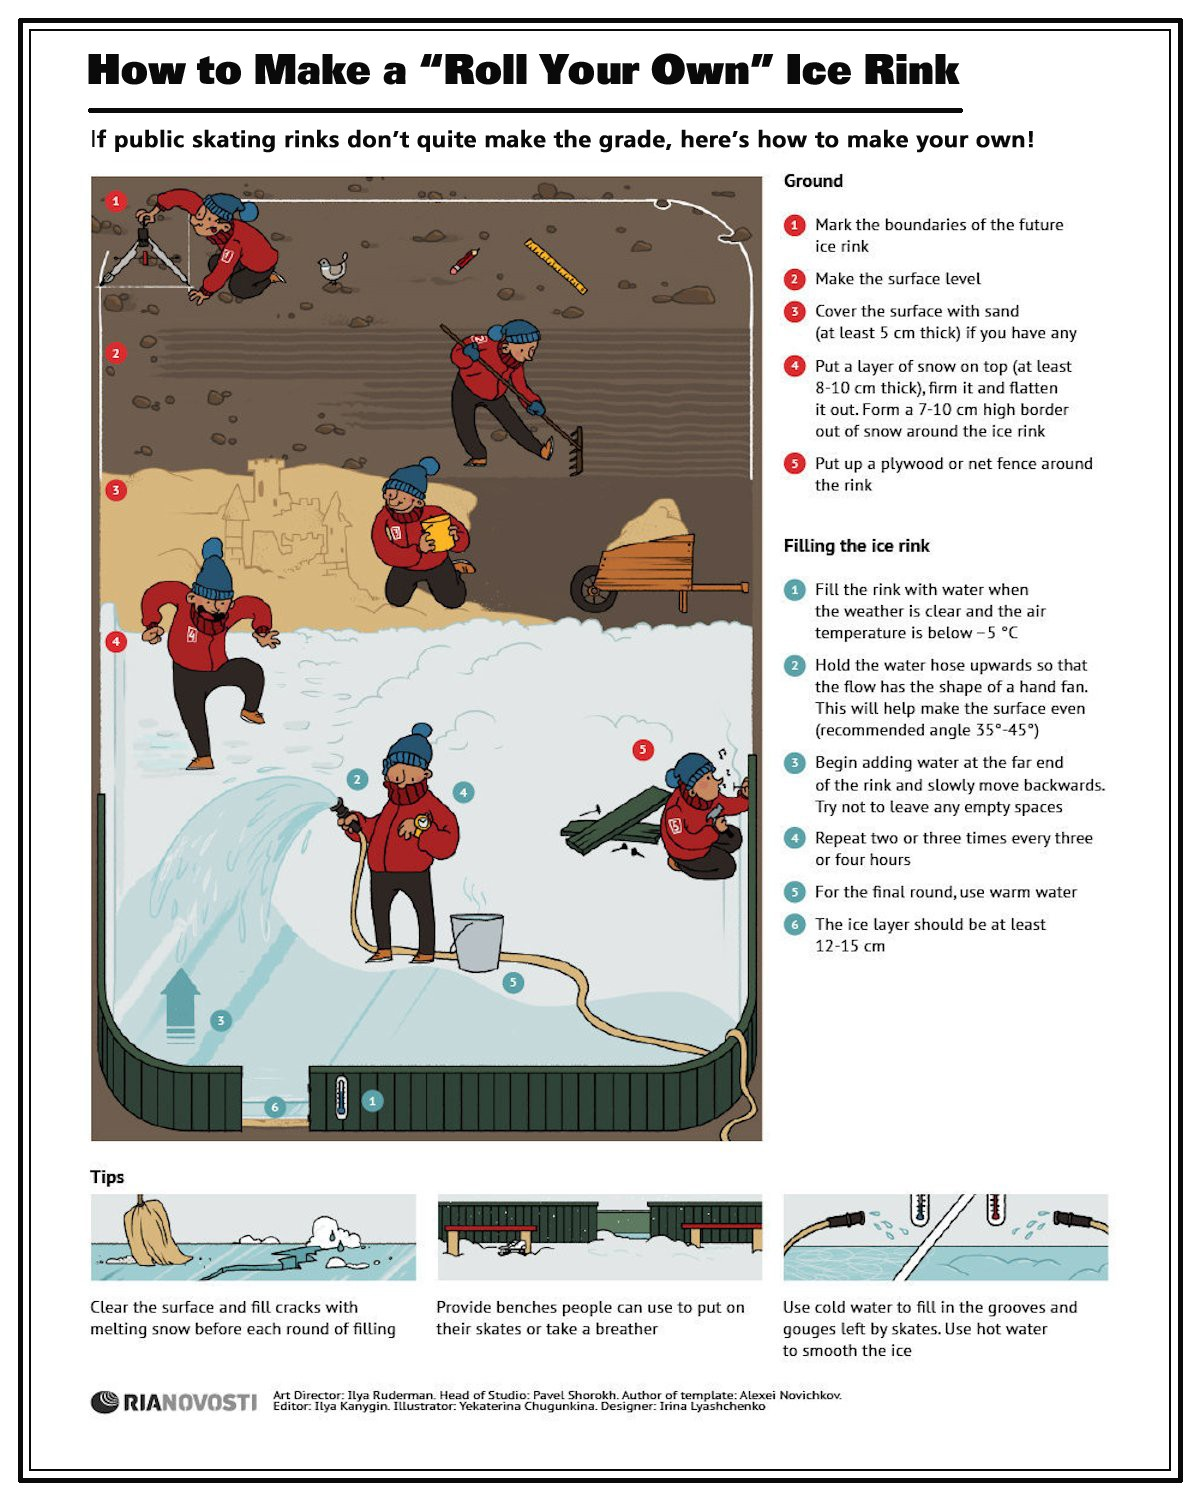 "00 RIA-Novosti Infographics. How to Make a ""Roll Your Own"" Ice Rink. 2012"